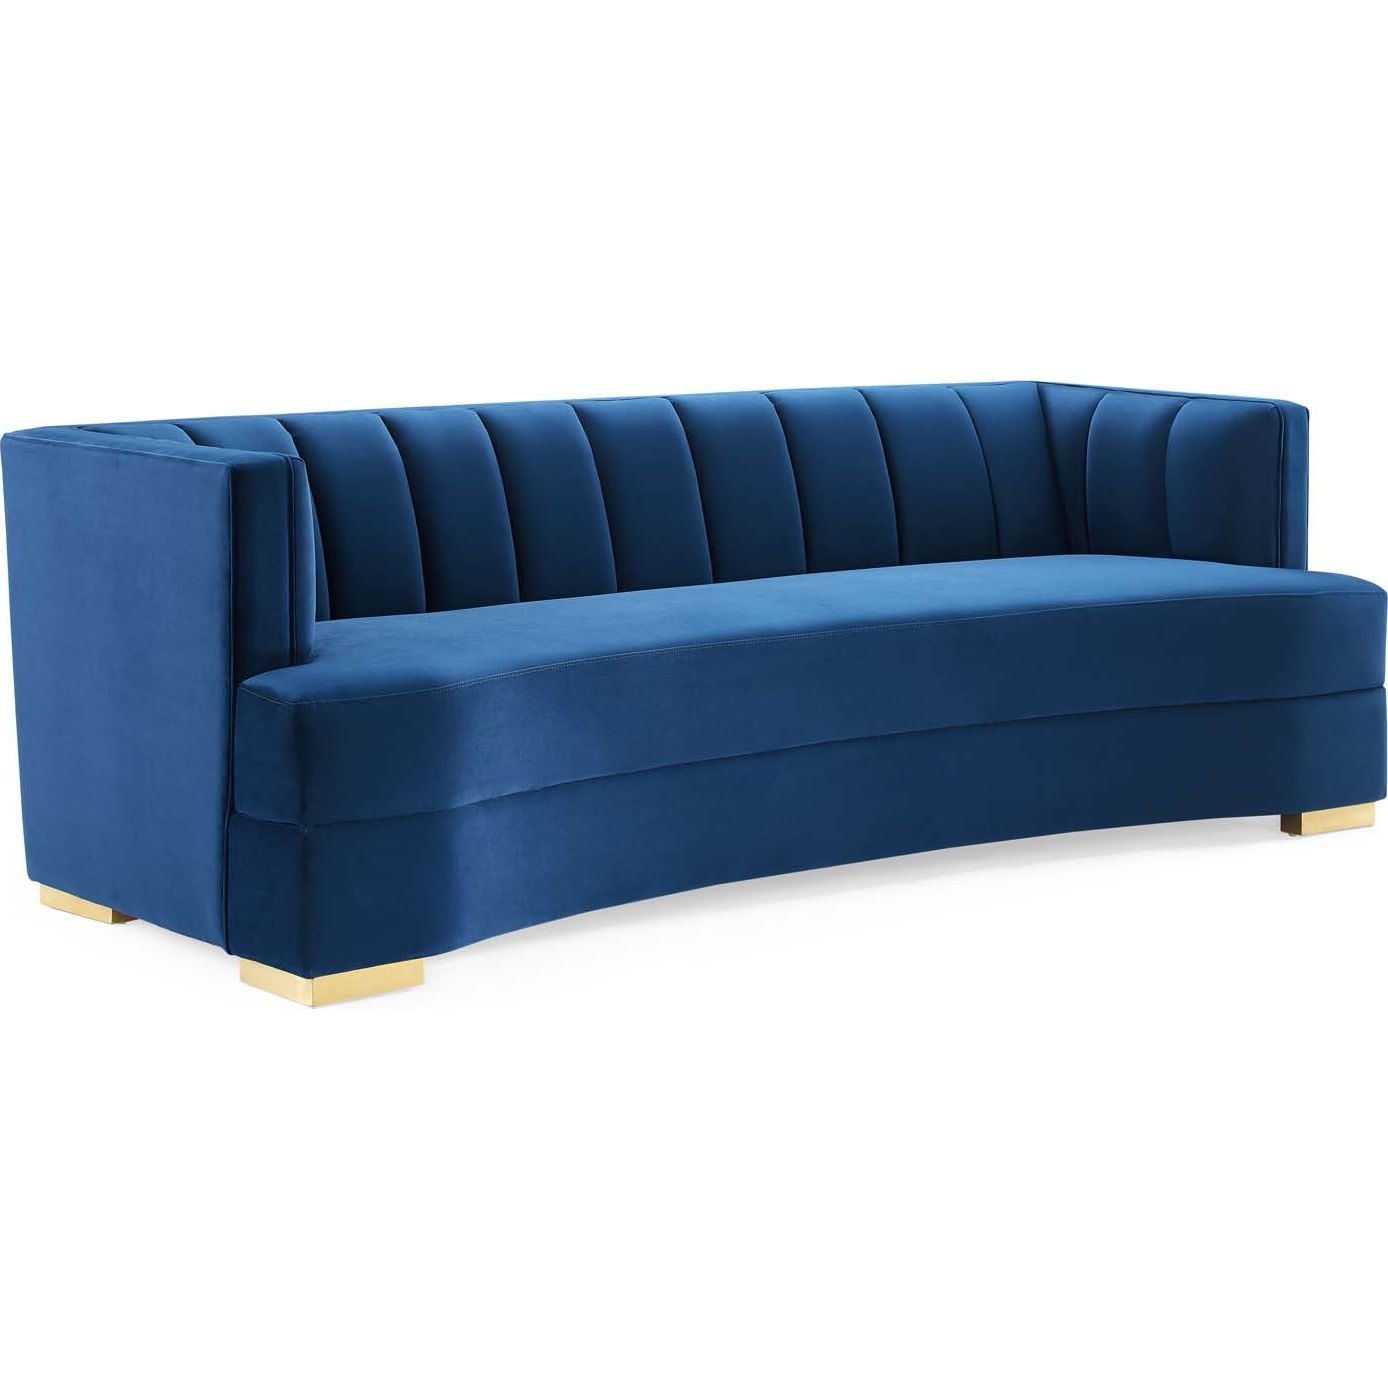 Picture of: Modway Eei 4134 Nav Encompass Curved Sofa In Channel Tufted Navy Blue Velvet Gold